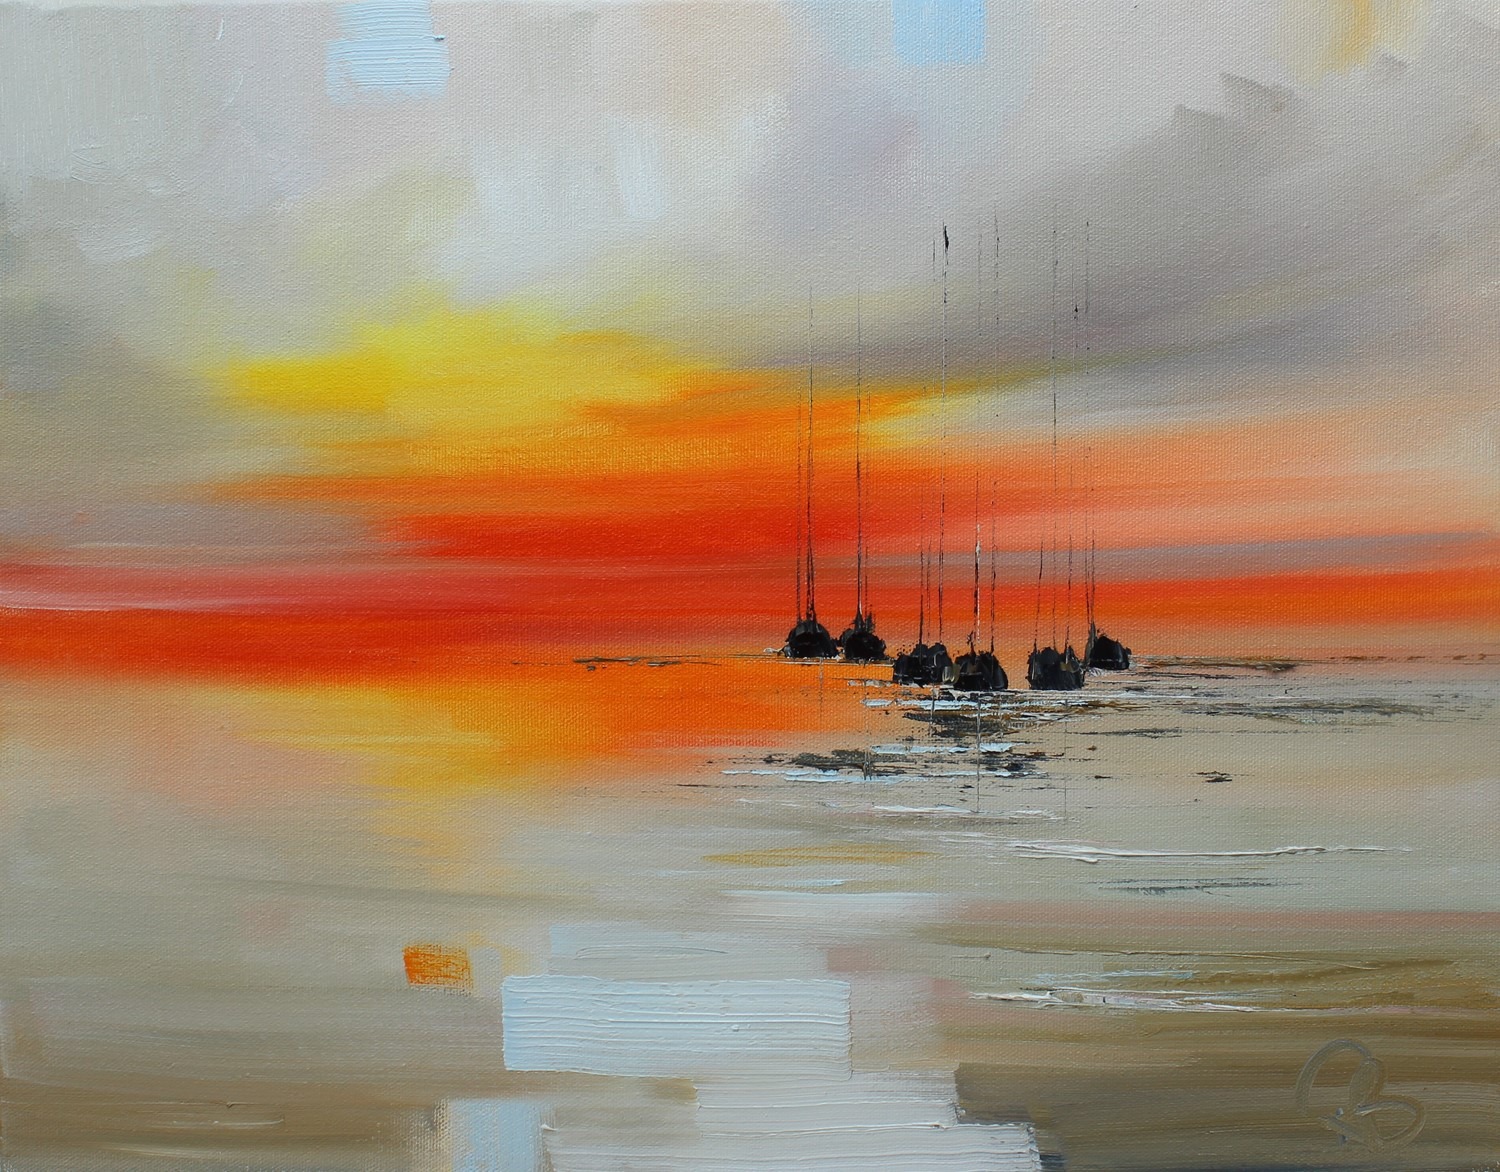 'Yachts All lined up at Sunset' by artist Rosanne Barr